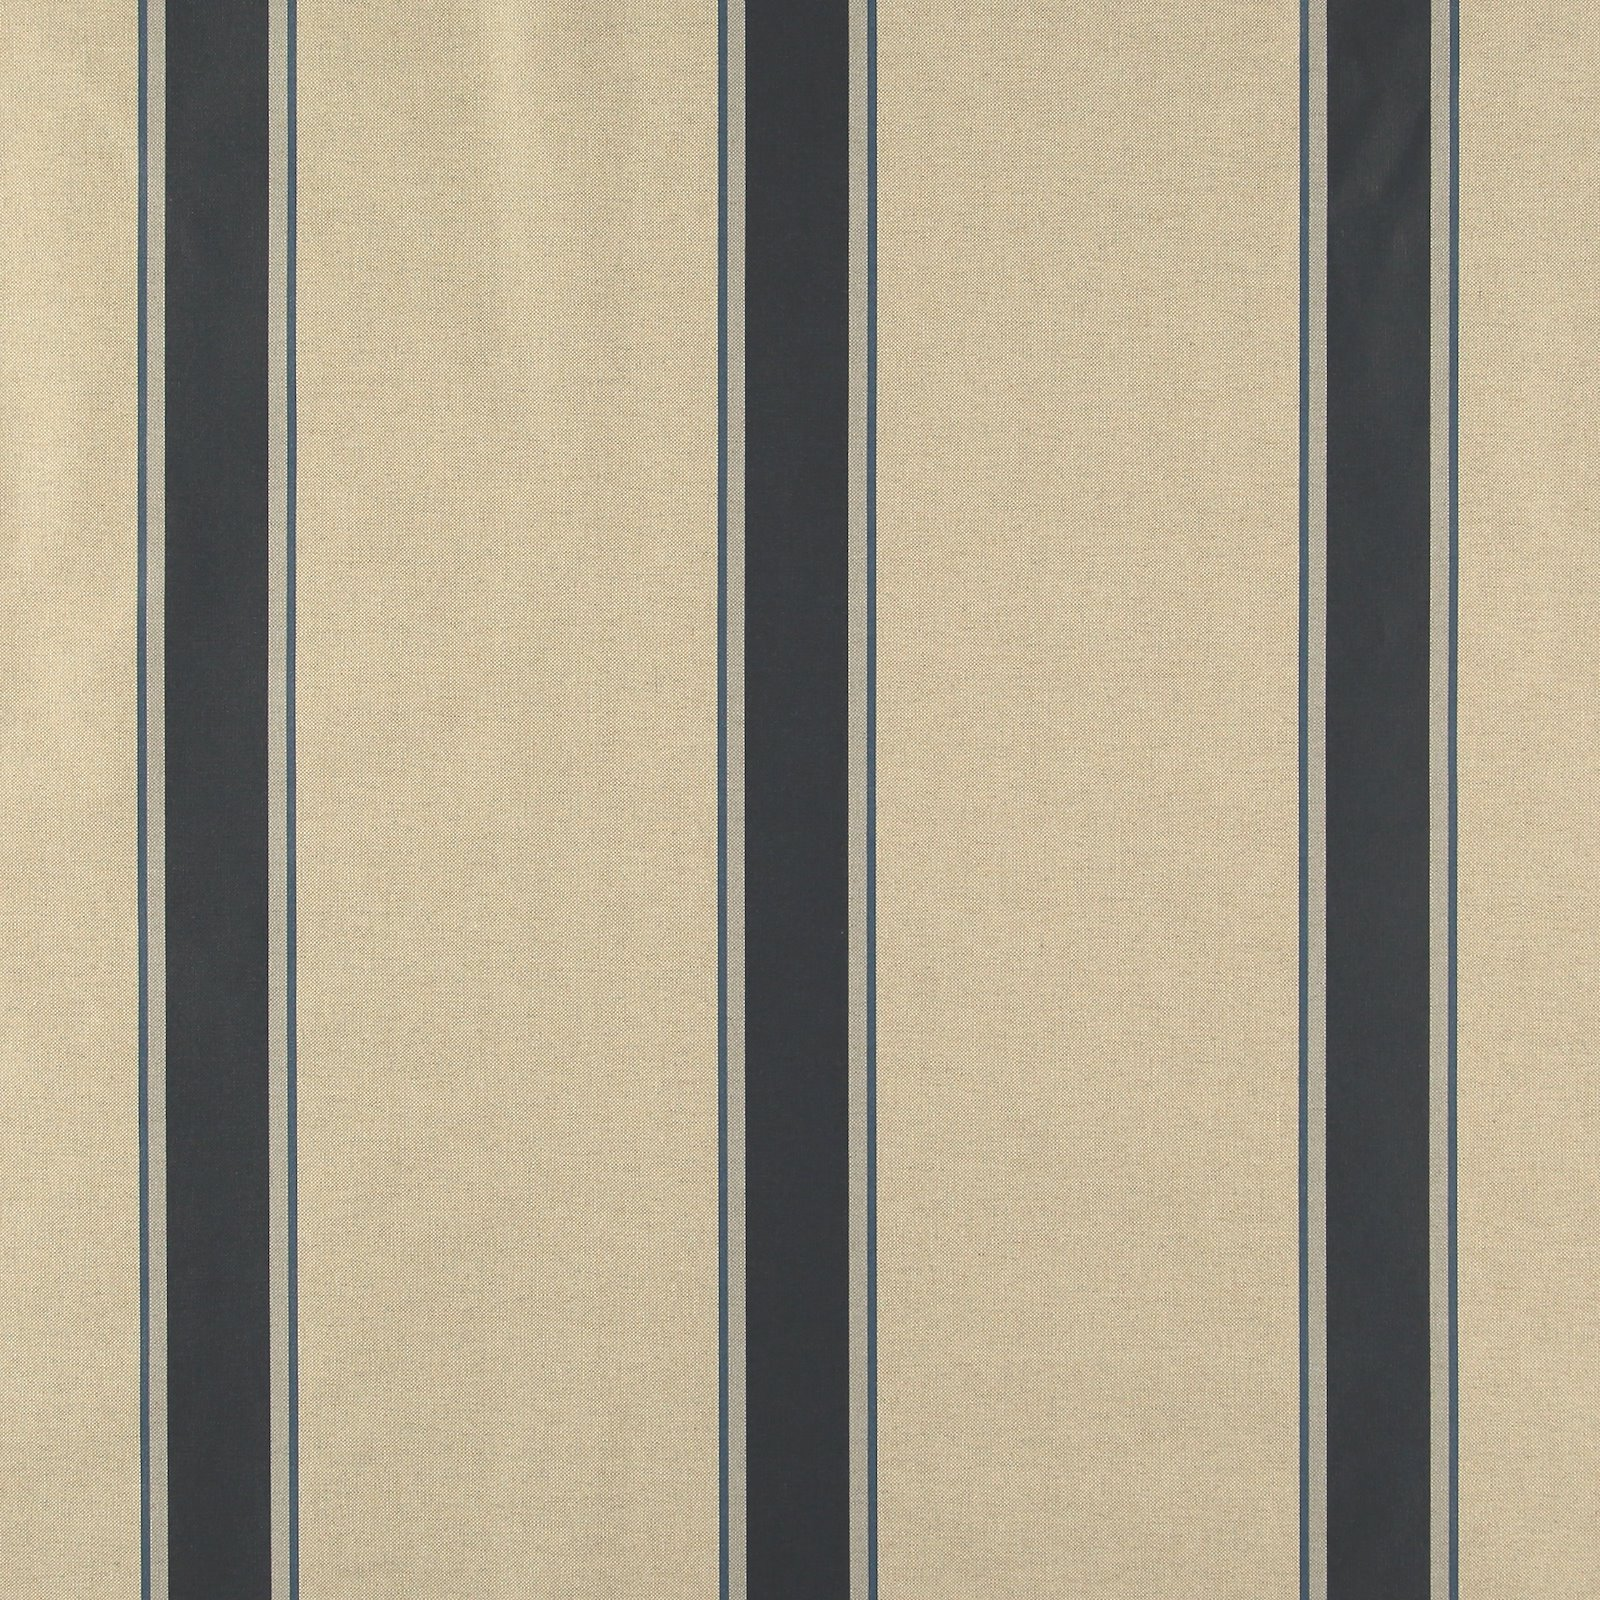 Woven oilcloth linenlook w blue stripes 872296_pack_sp